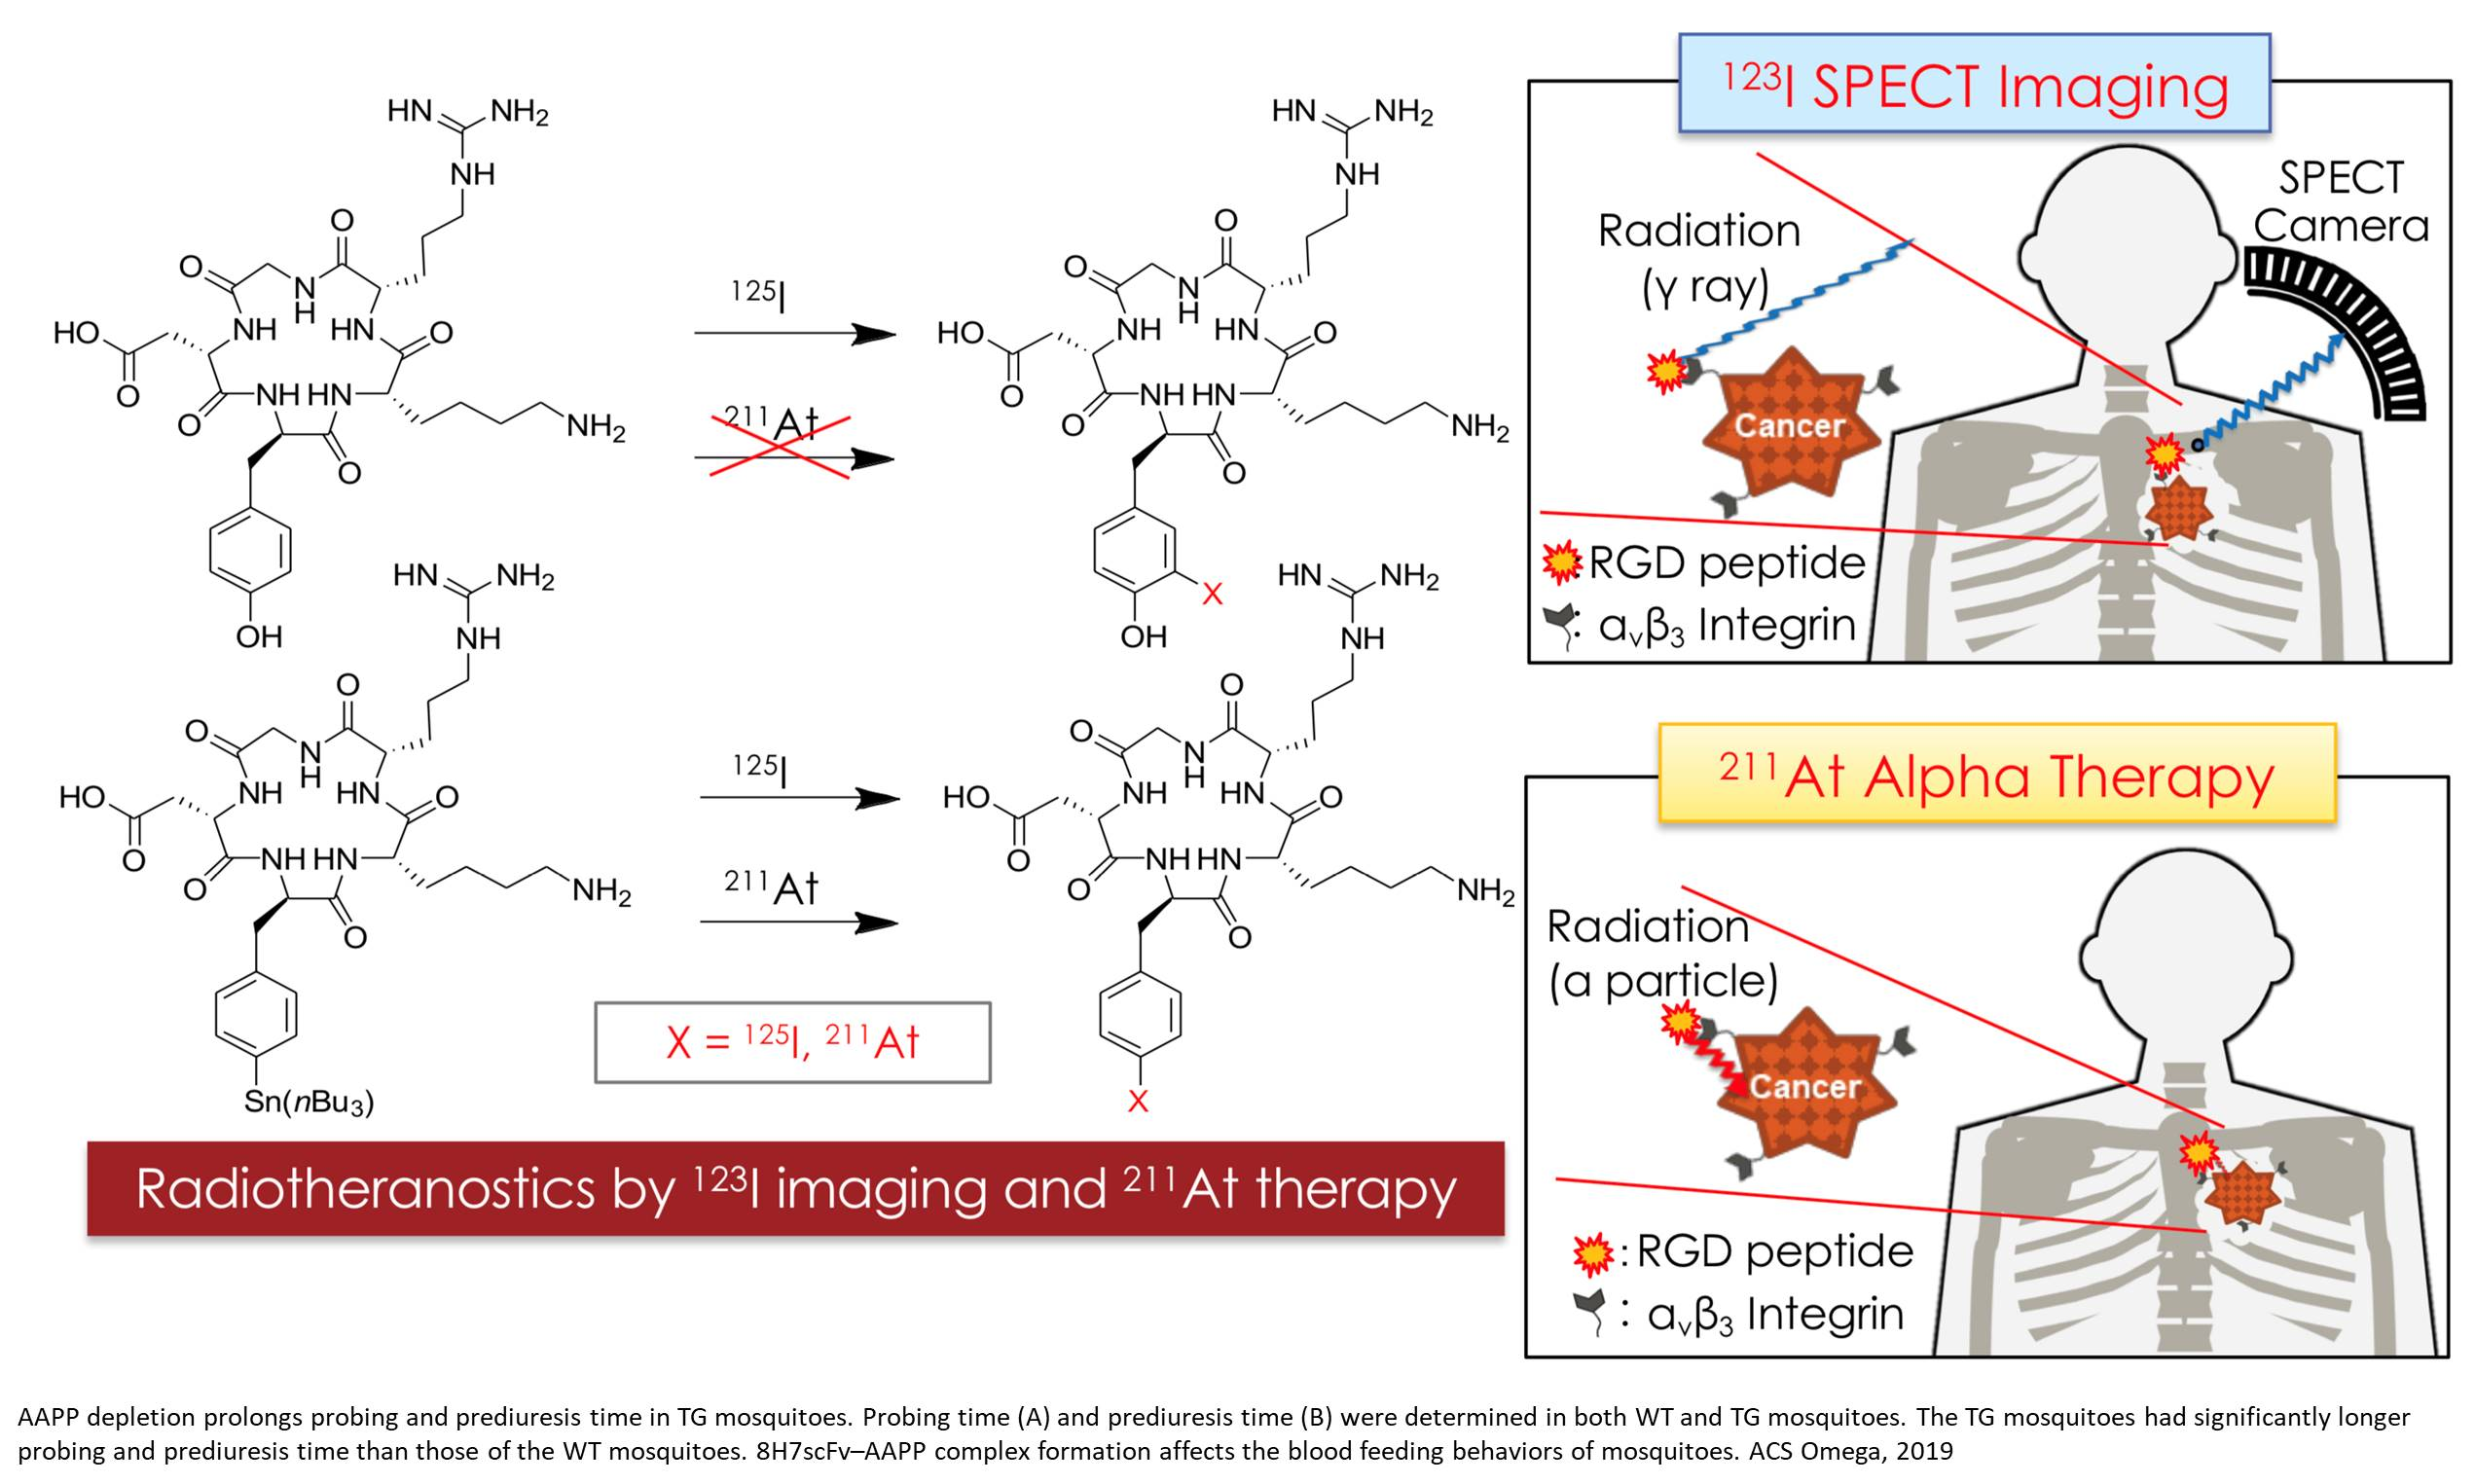 Radioisotope couple for tumor diagnosis and therapy